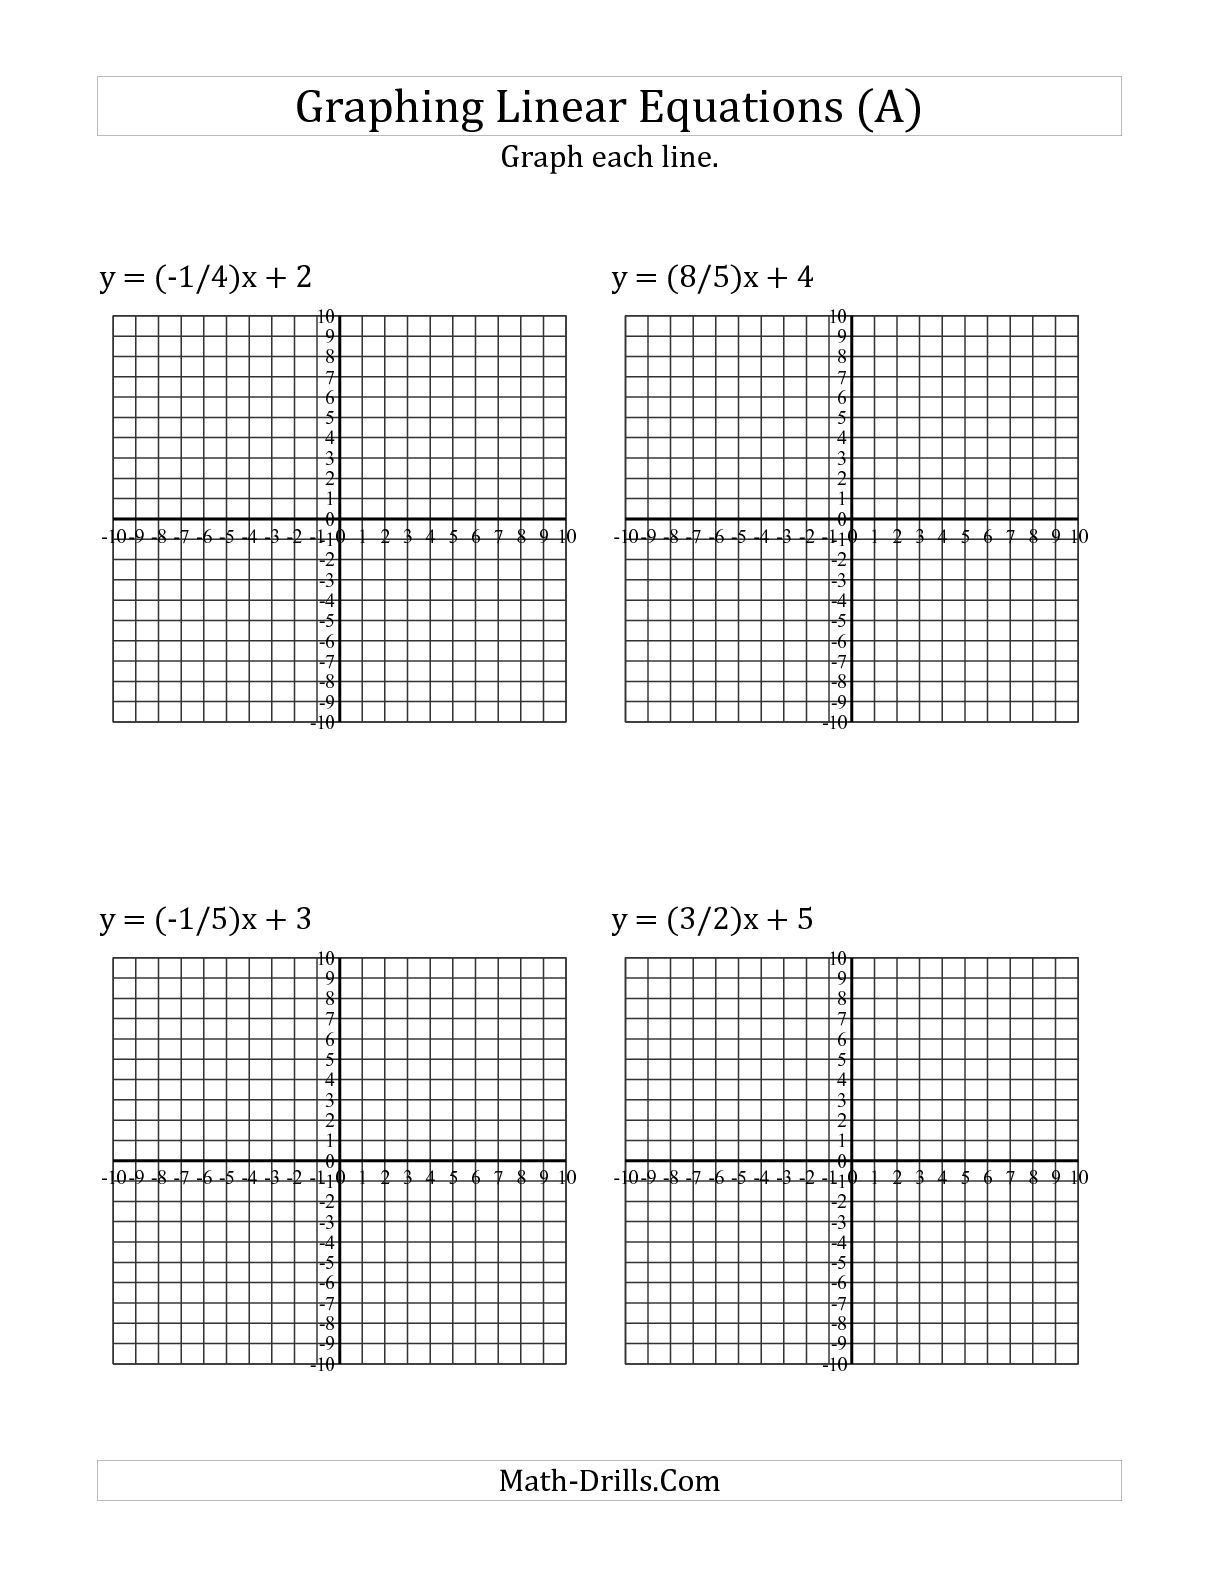 Graphing Linear Equations Practice Worksheet The Graph A Linear Equation In Slope Inter Graphing Linear Equations Graphing Linear Inequalities Linear Equations [ 1584 x 1224 Pixel ]